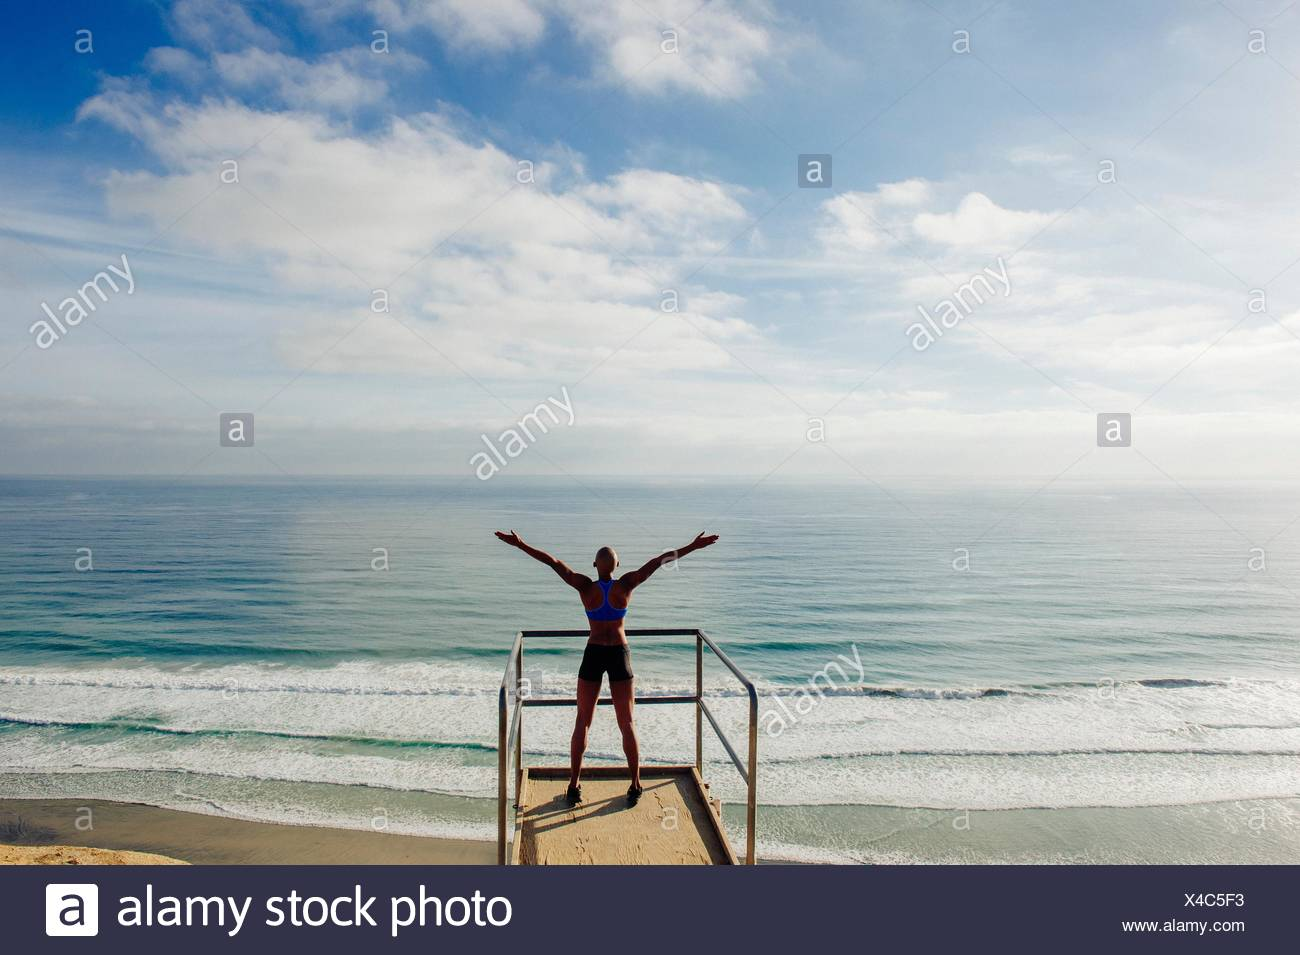 Young woman standing on look out point beside sea, arms raised, rear view - Stock Image